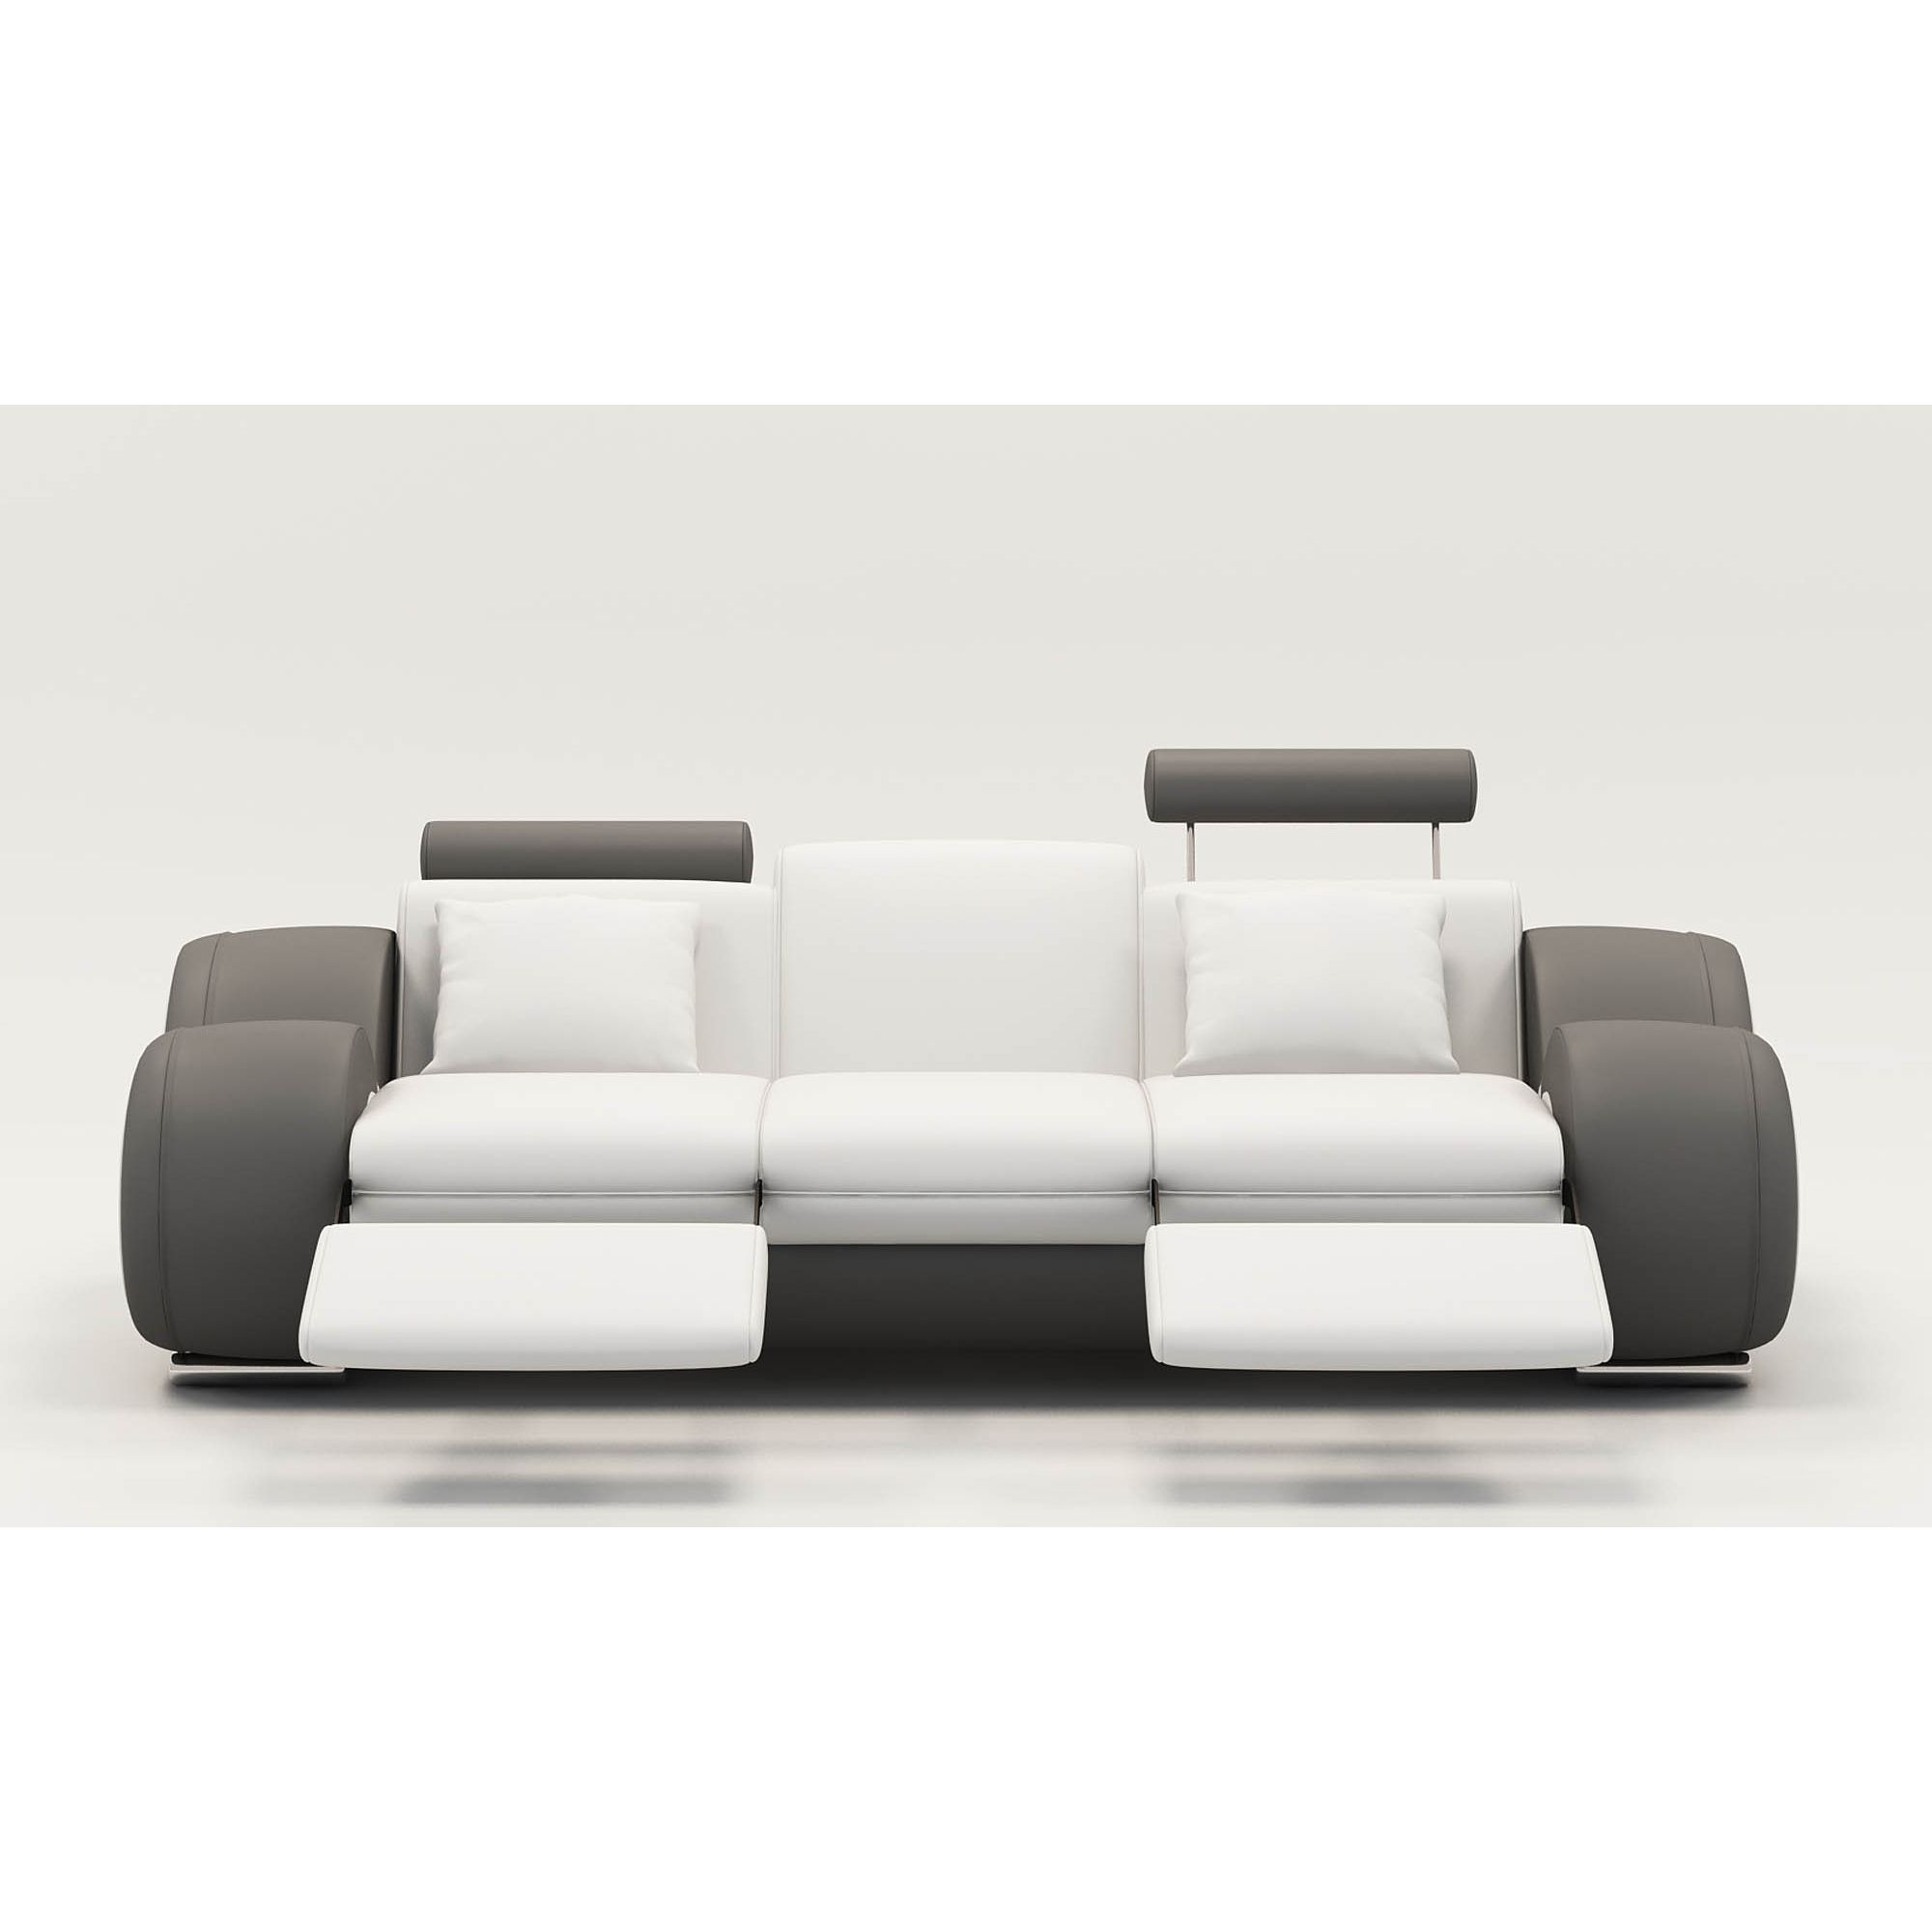 Deco in paris 9 canape design 3 places cuir blanc et gris tetieres relax os - Canape blanc 3 places ...